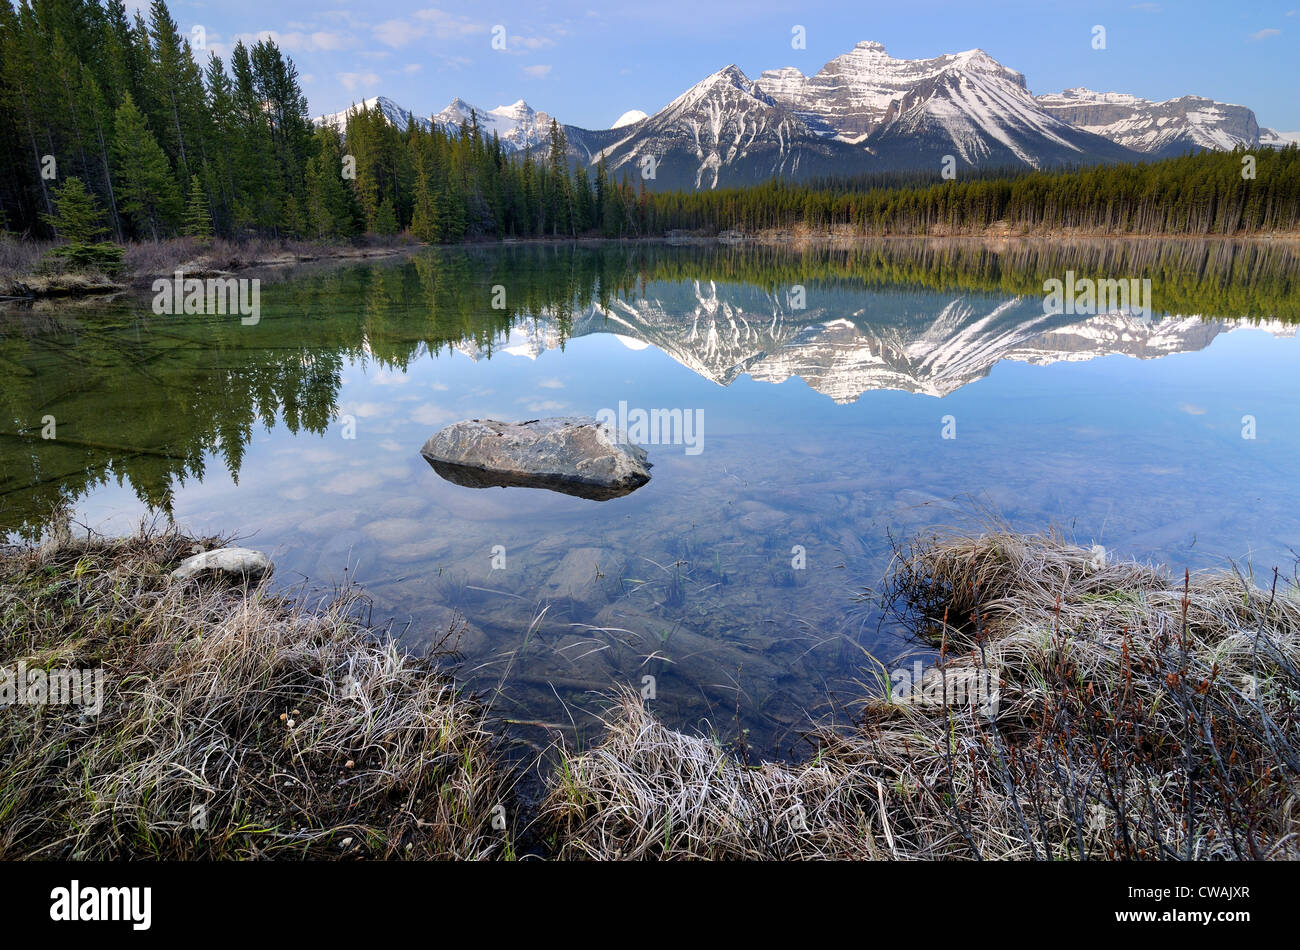 Herbert et gamme Bow, Banff National Park, Alberta, Canada Photo Stock